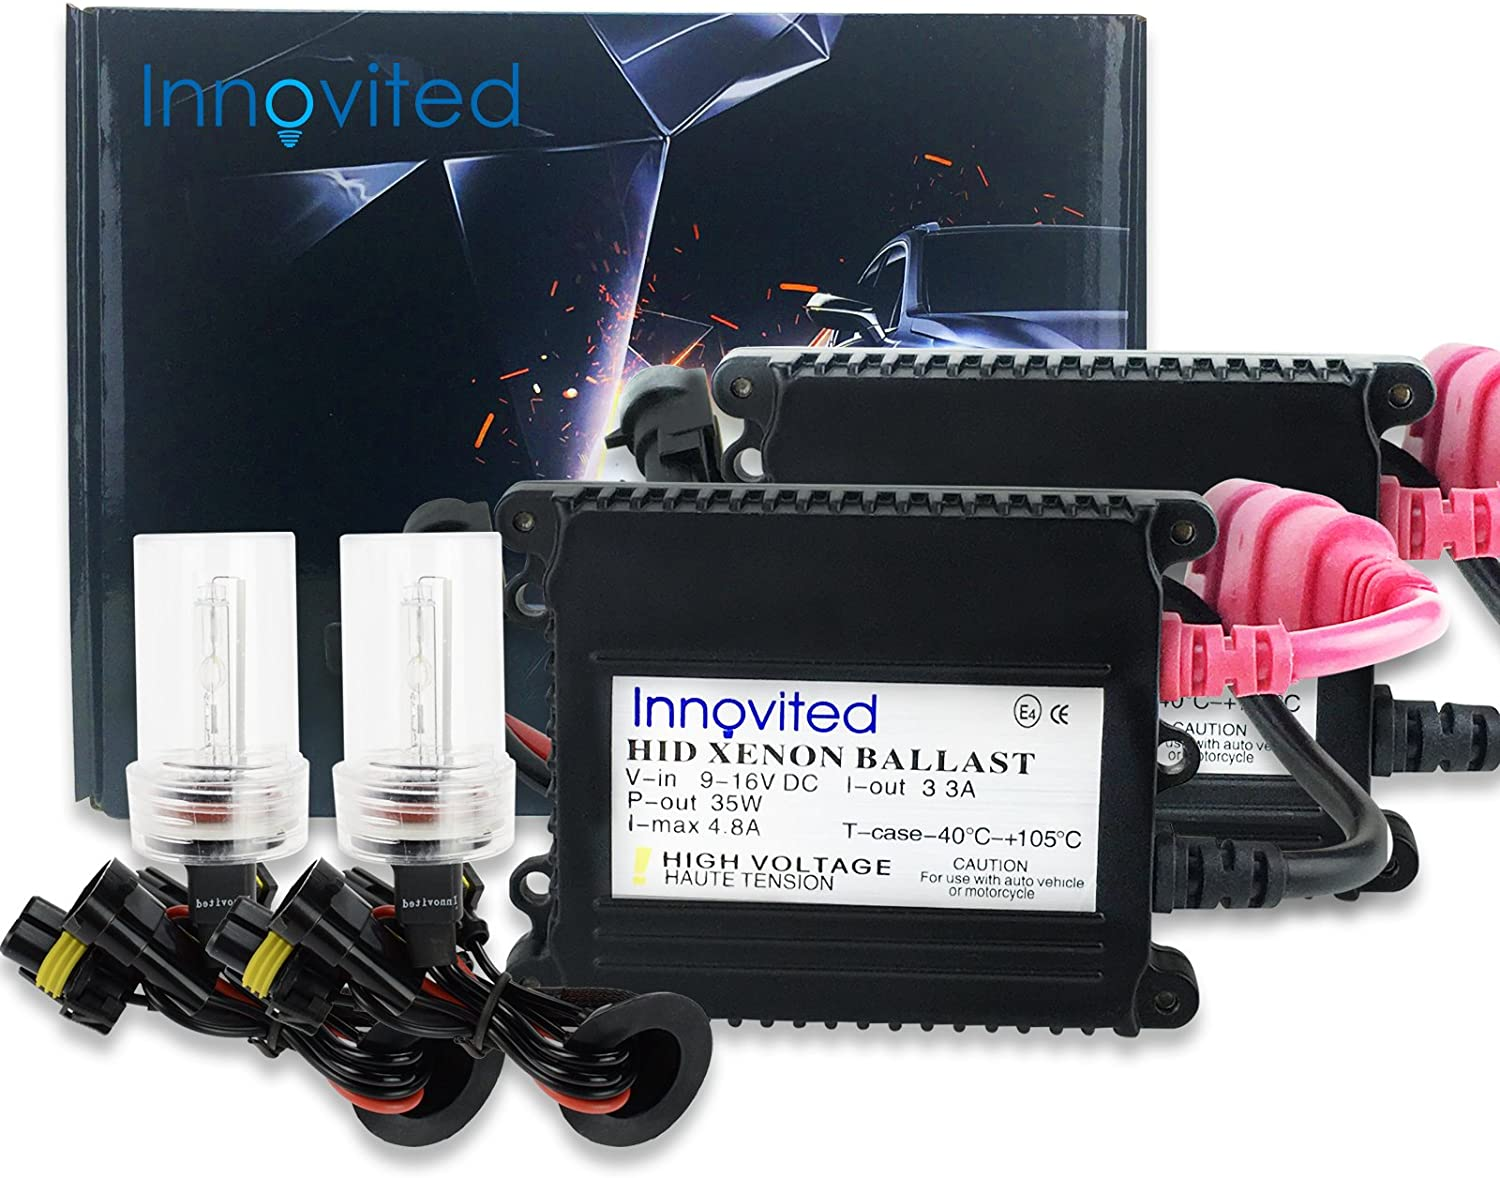 Deep Blue Innovited DC 35W Xenon HID Lights KitAll Bulb Sizes and Colors with Premium Slim Ballast H1-30000K 2 Year Warranty